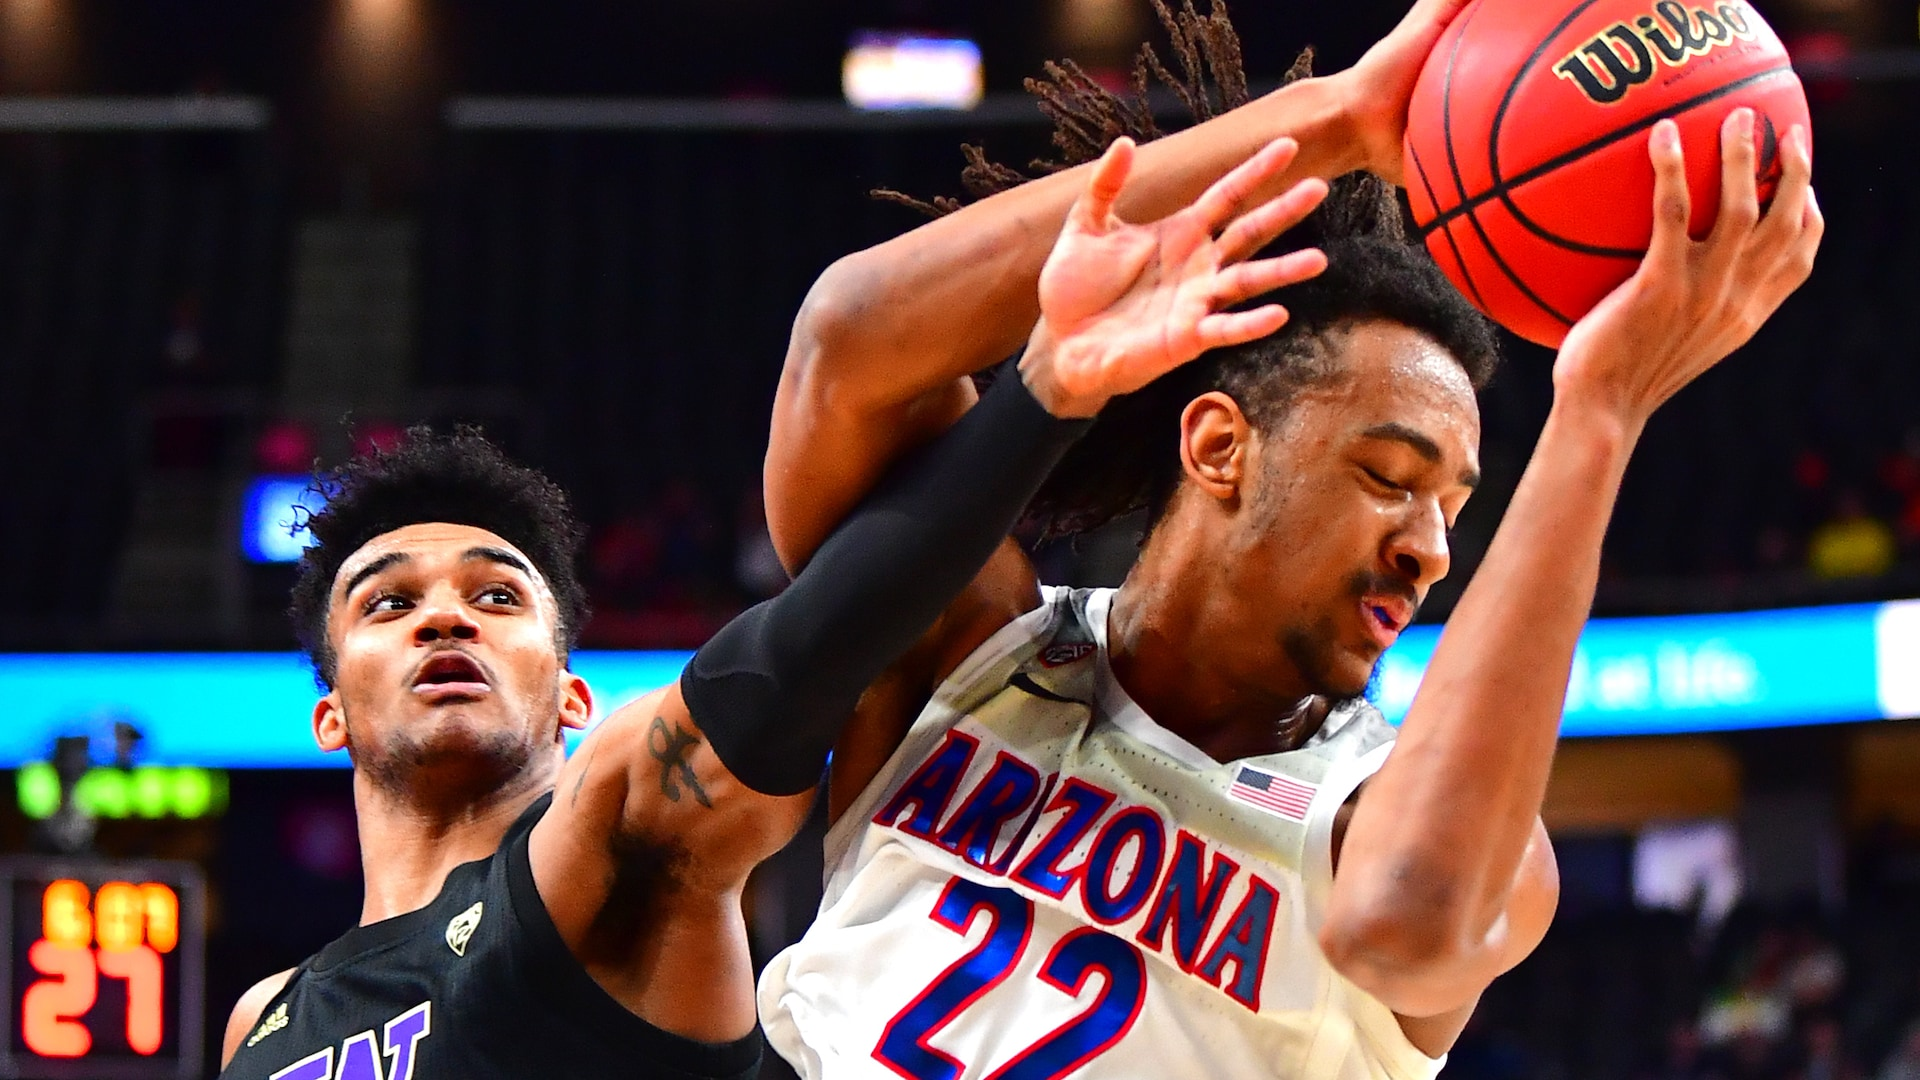 Arizona's freshman Zeke Nnaji learned hoops lessons from music